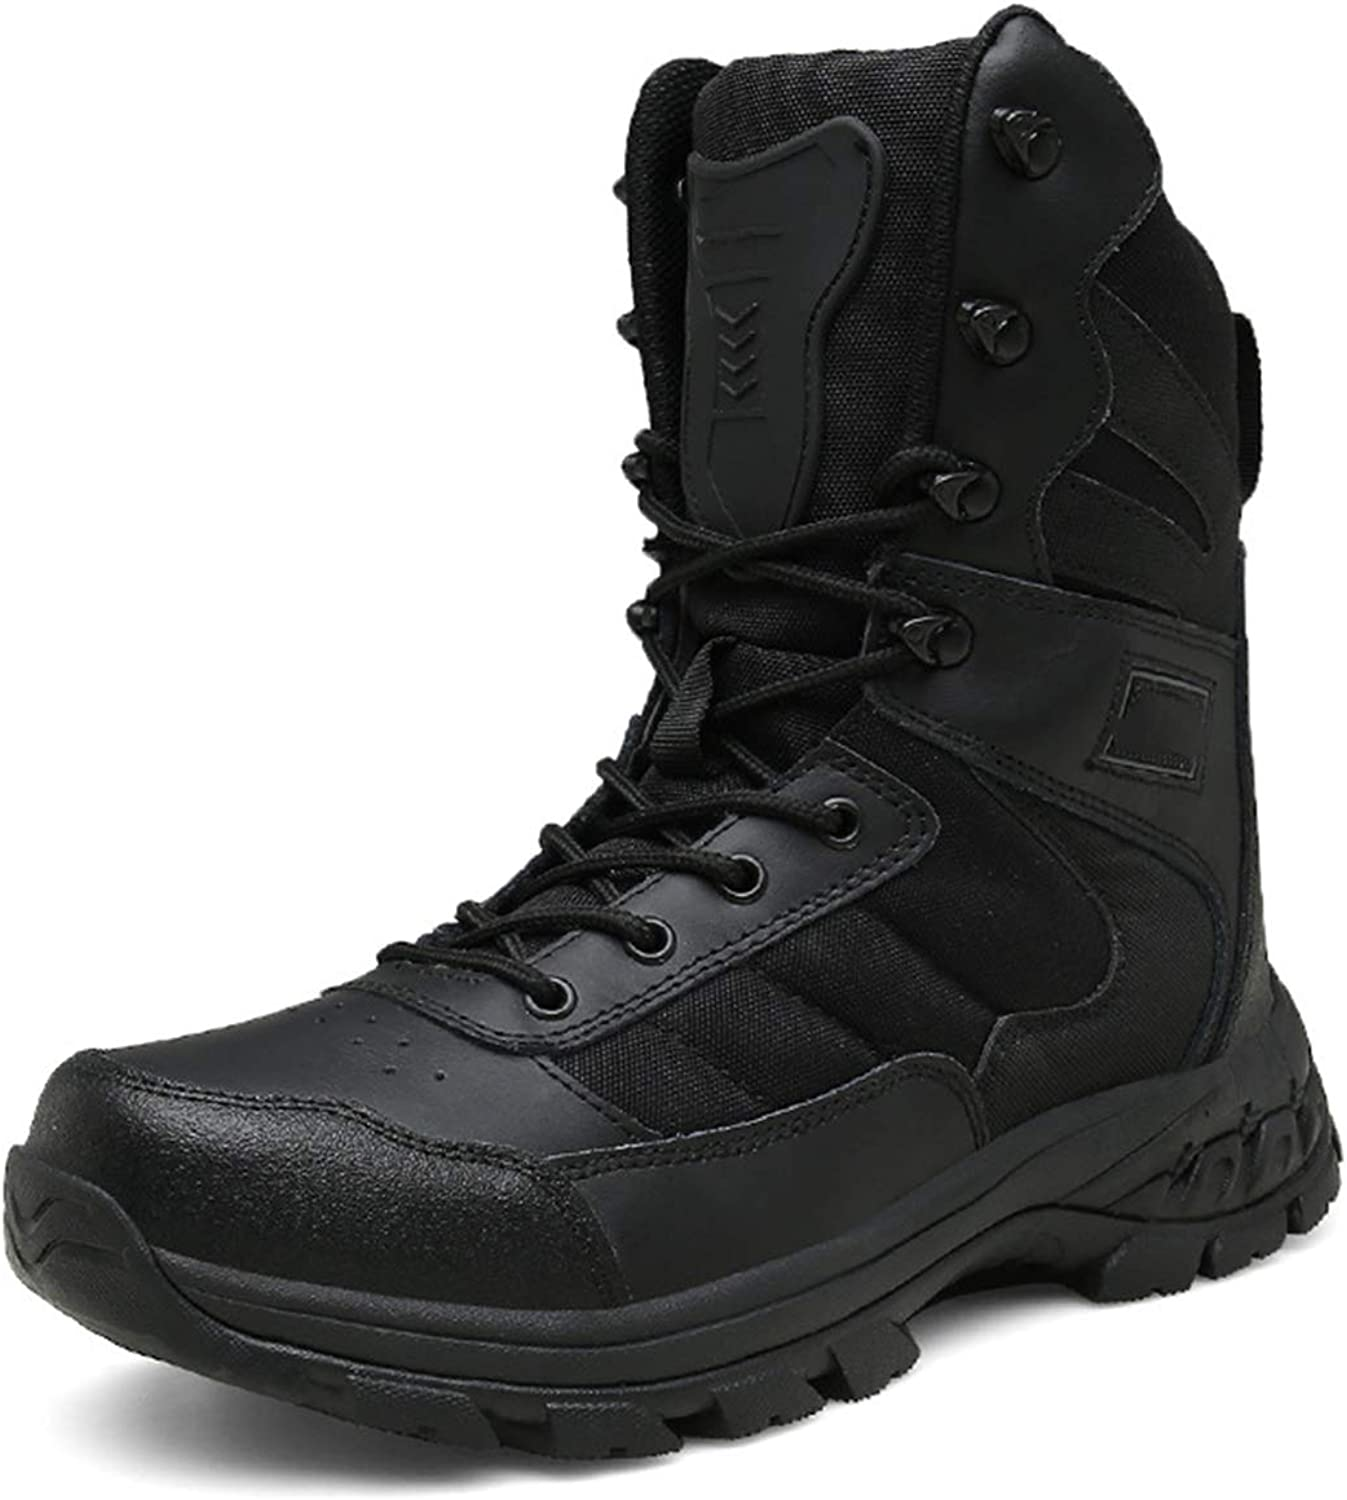 HNGLXQ Combat Boots G-21 Leather Side Zip Army Tactical Boots Delta Military Work Army shoes Safety Ankle Boots Breathable Commando Outdoor Desert Tactical Military Patrol Boots,Black-EU43